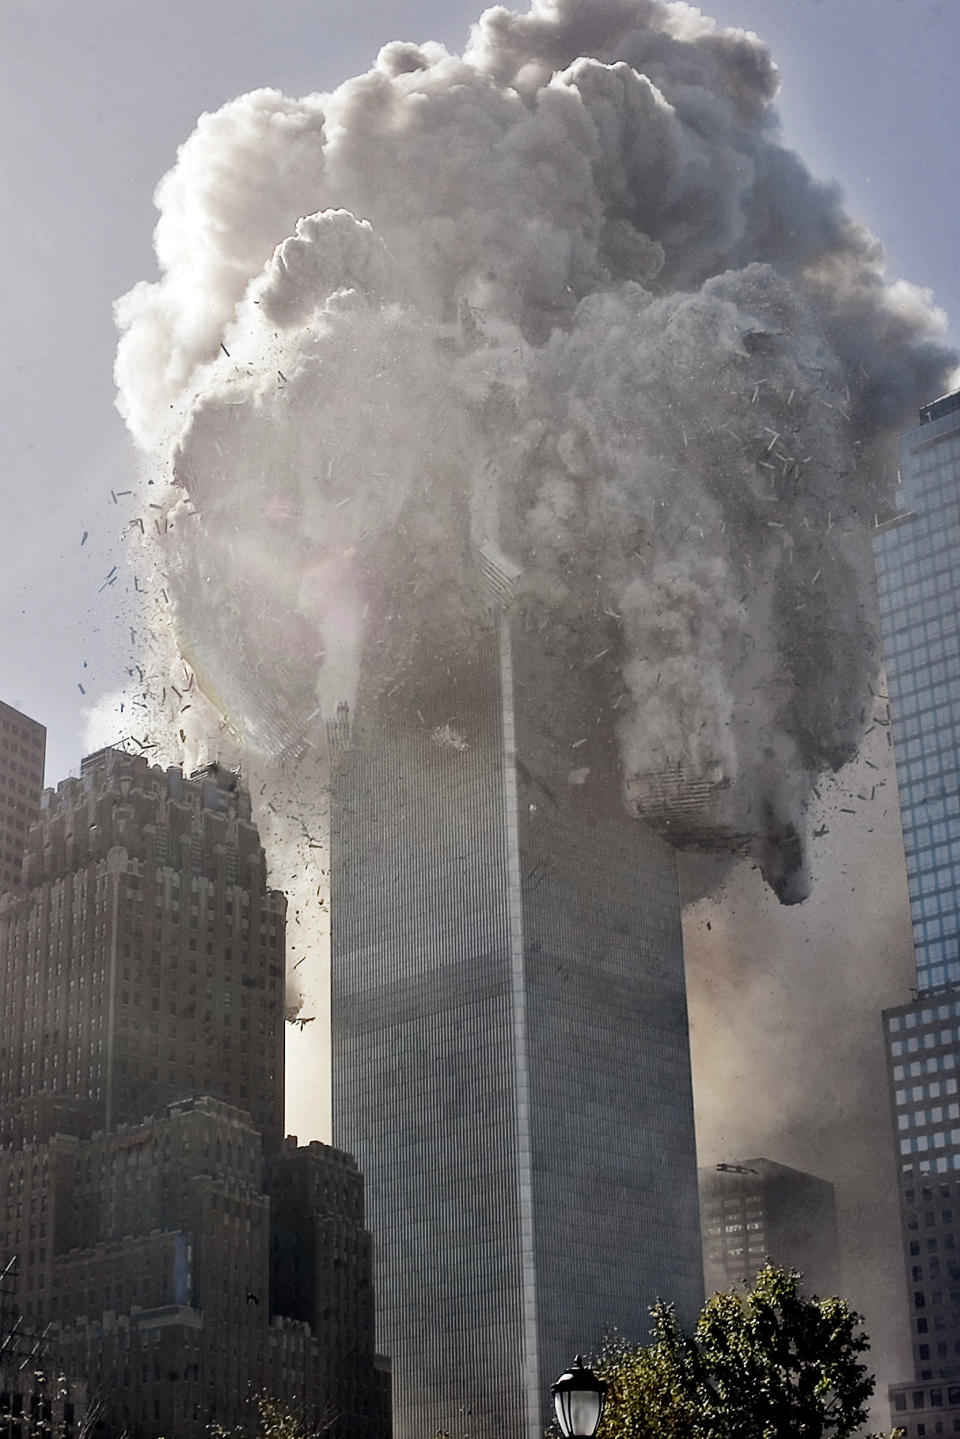 "The north tower of New York's World Trade Center collapses after being struck by hijacked American Airlines Flt. 11, Tuesday, Sept. 11, 2001. <br><br>(AP Photo Richard Drew)<br><a href=""http://www.life.com/gallery/59971/911-the-25-most-powerful-photos#index/0"" rel=""nofollow noopener"" target=""_blank"" data-ylk=""slk:"" class=""link rapid-noclick-resp""><br></a>"